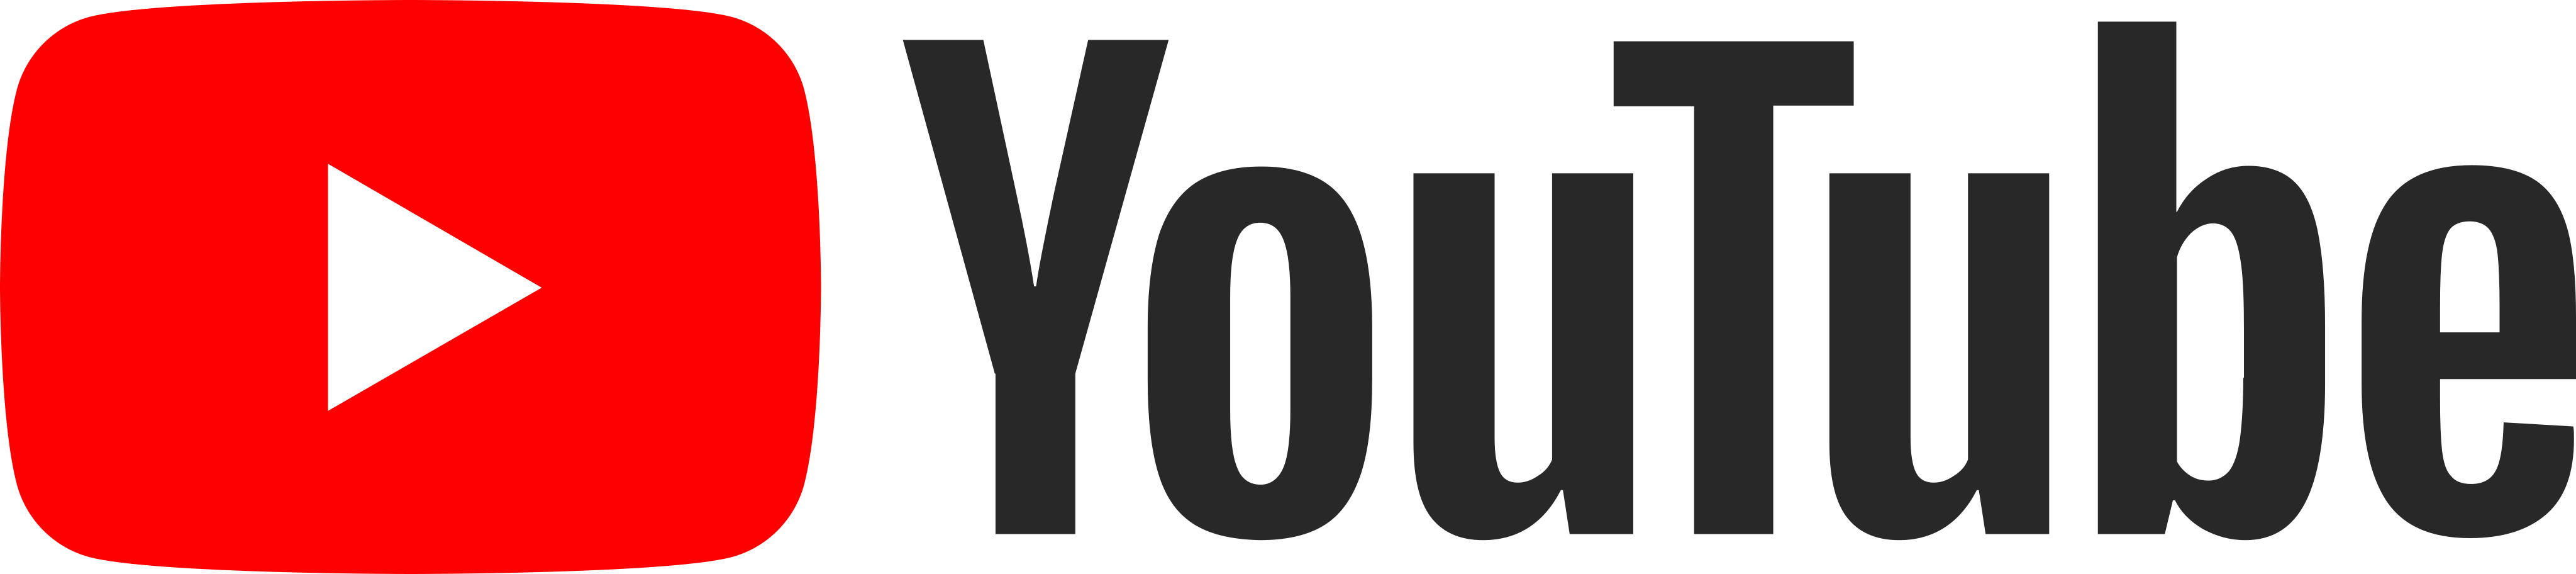 youtube-logo-9